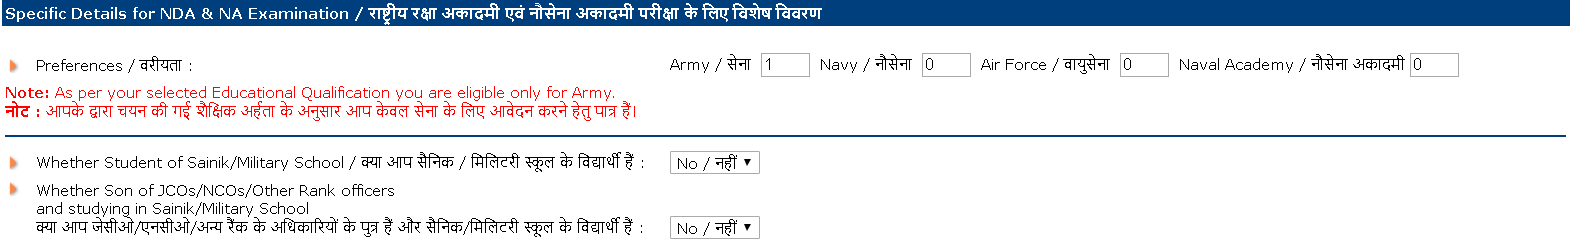 NDA Application Form Specific Details